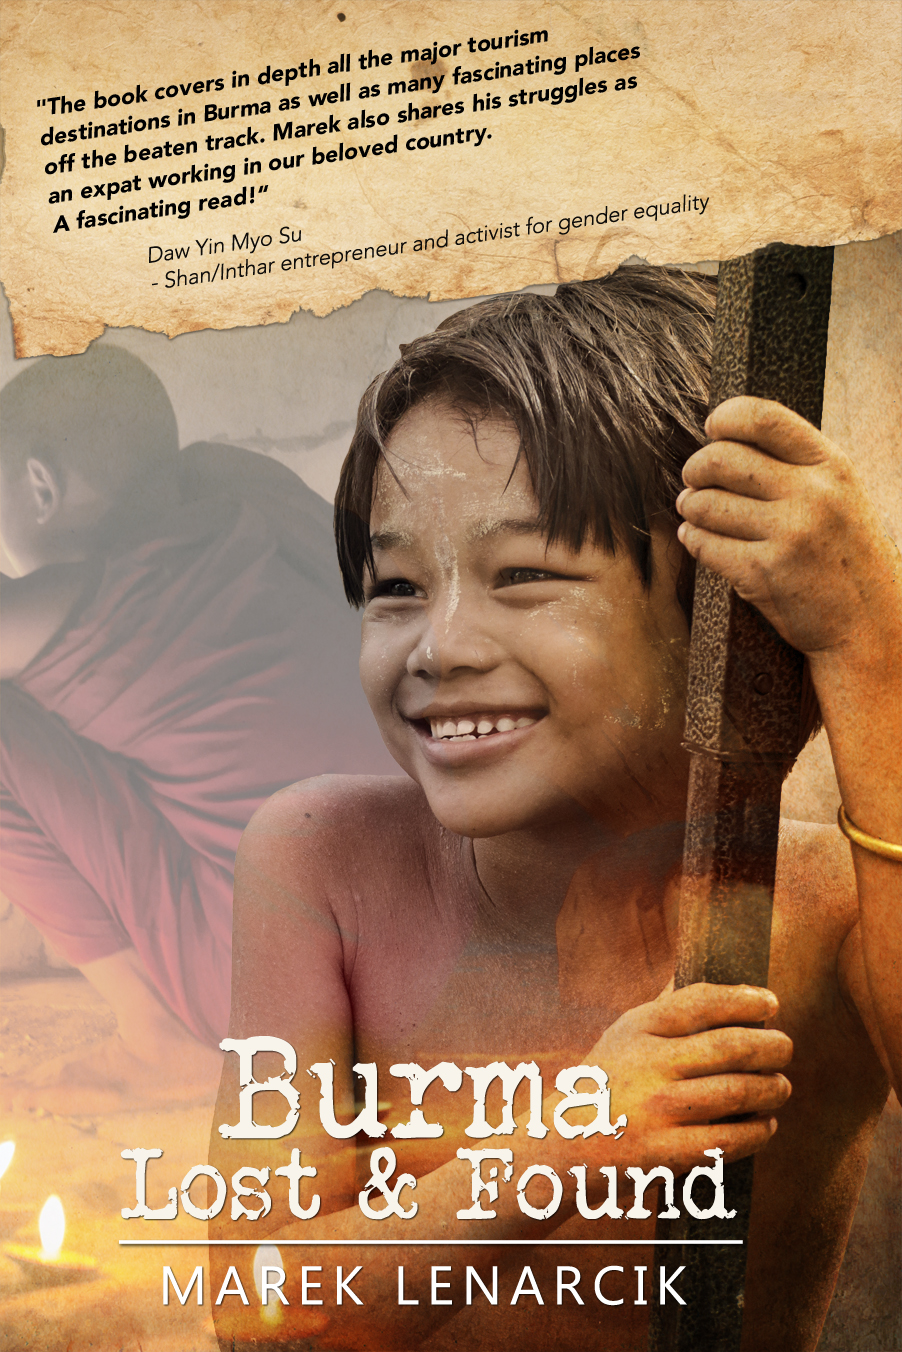 Burma-Lost-Found-Lenarcik-do-Kindla-150-dpi-_-wer.2